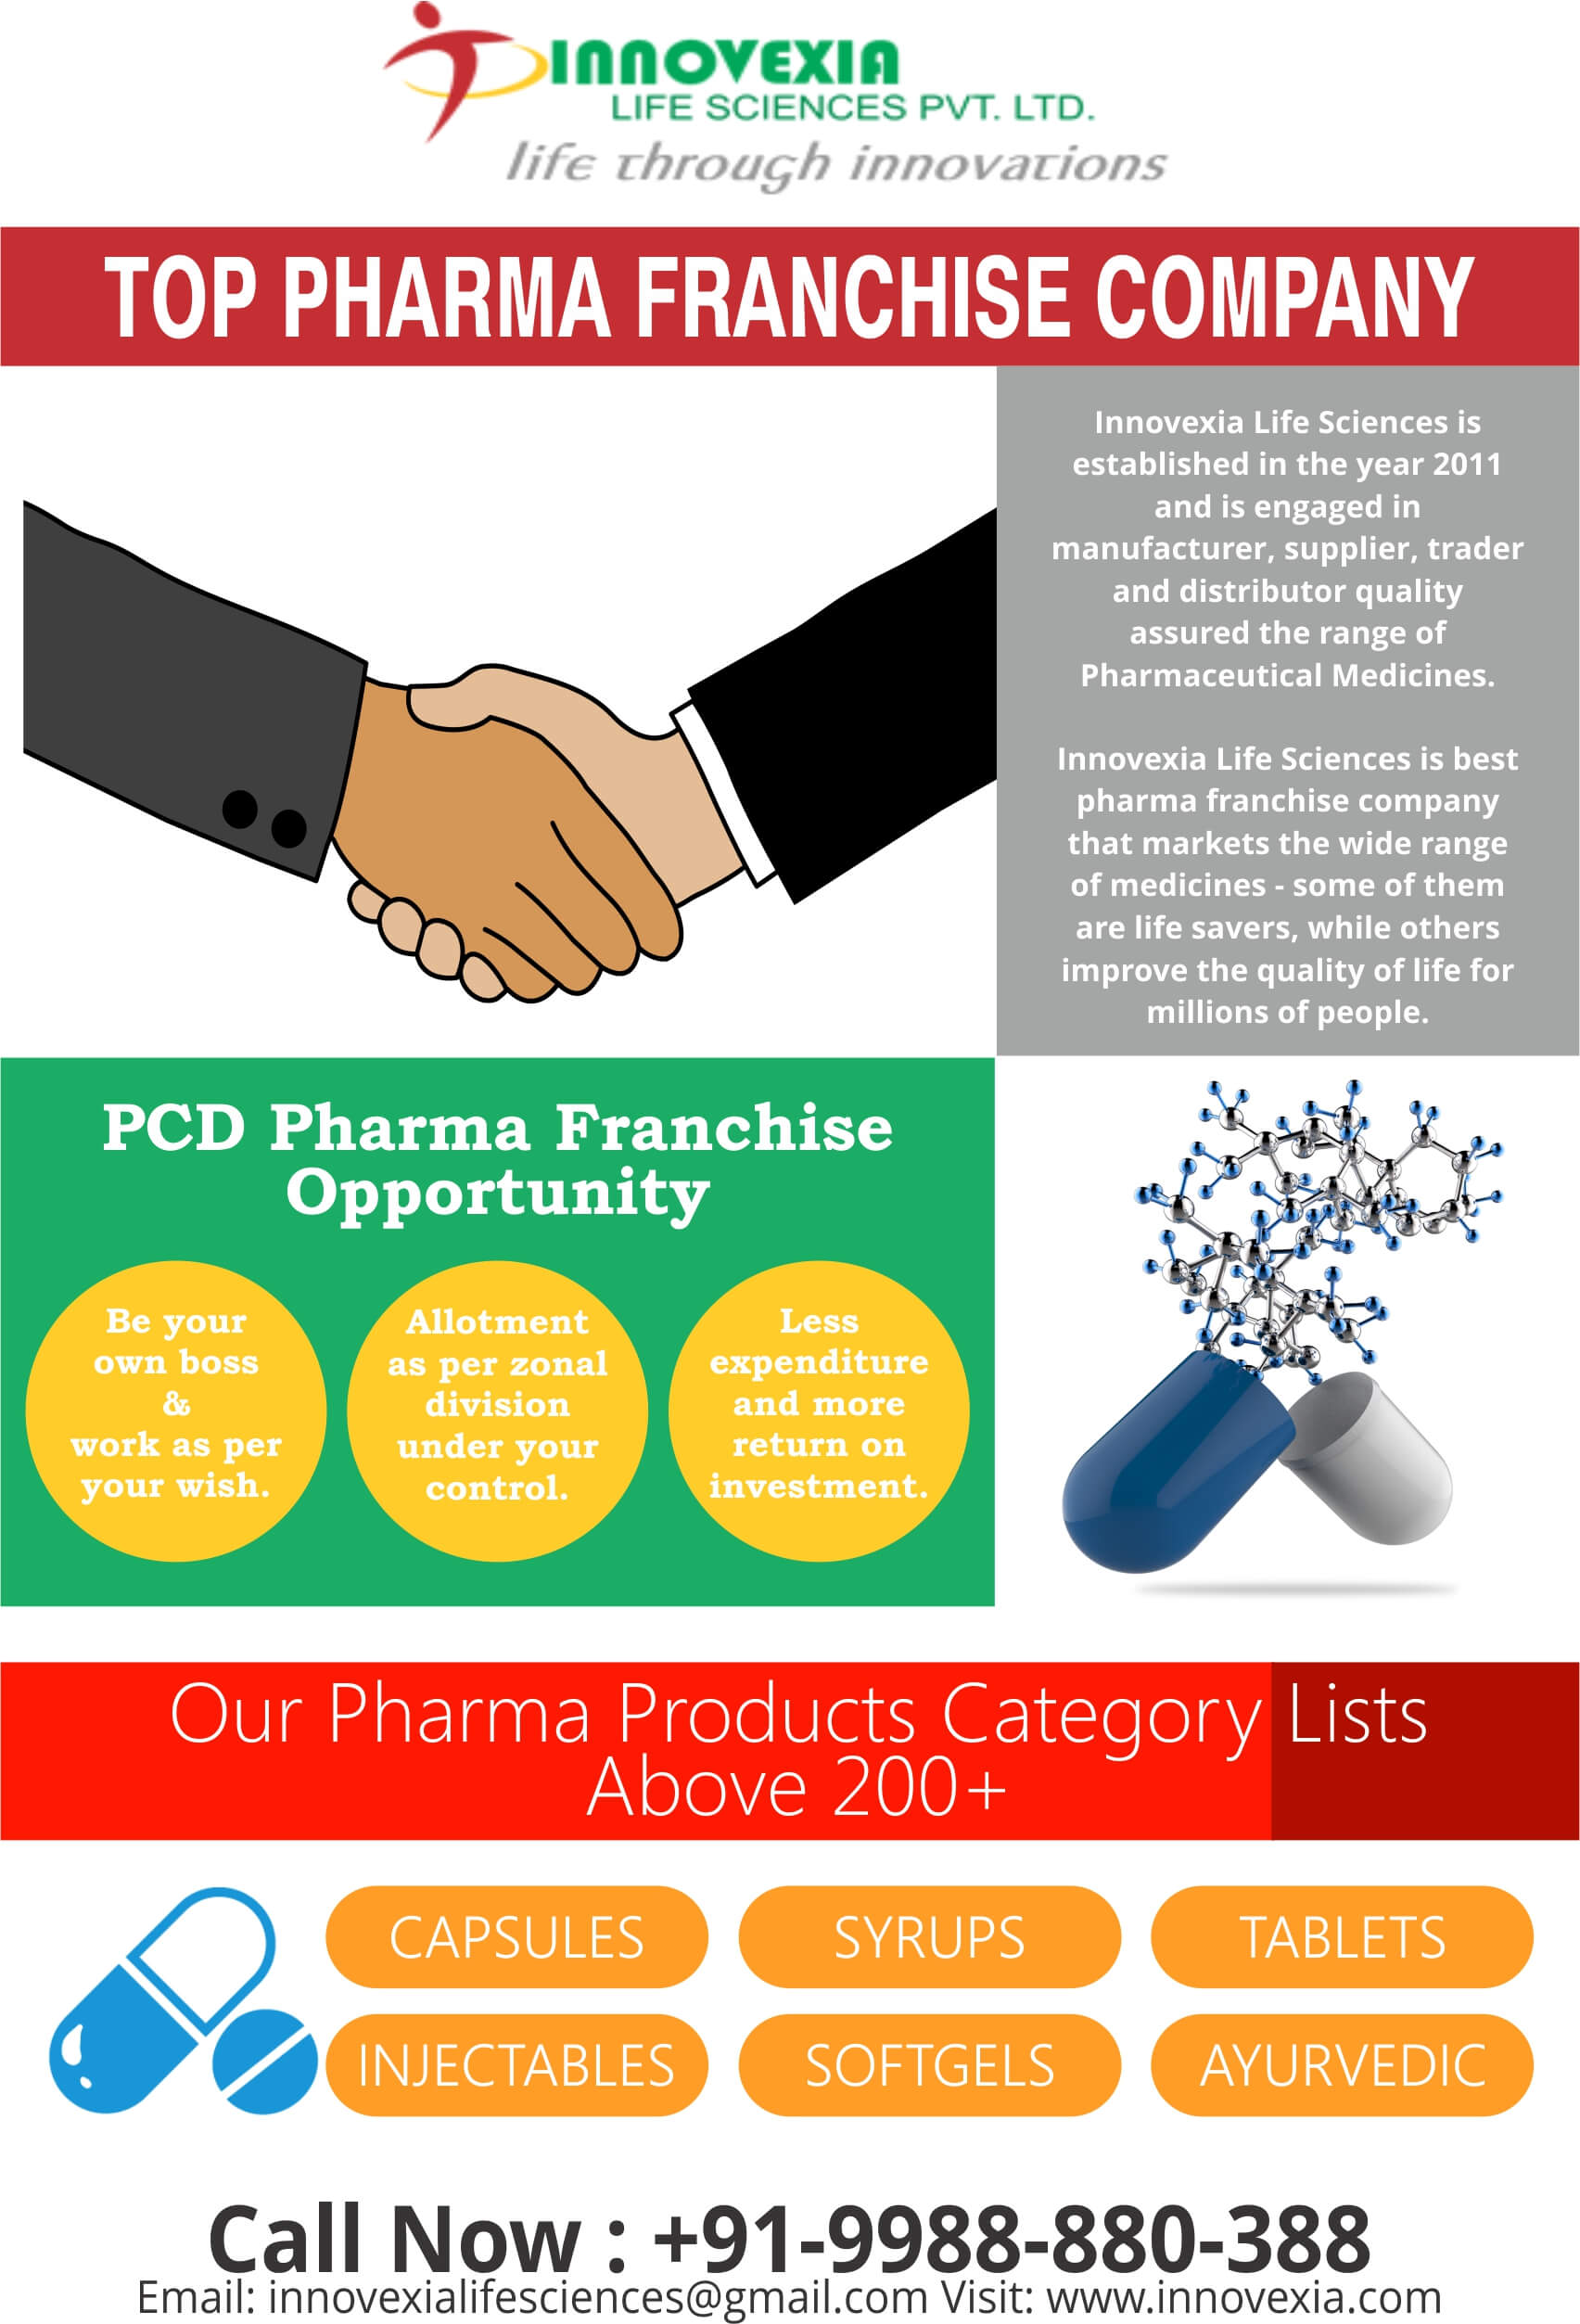 PCD Pharma Franchise in Karantaka